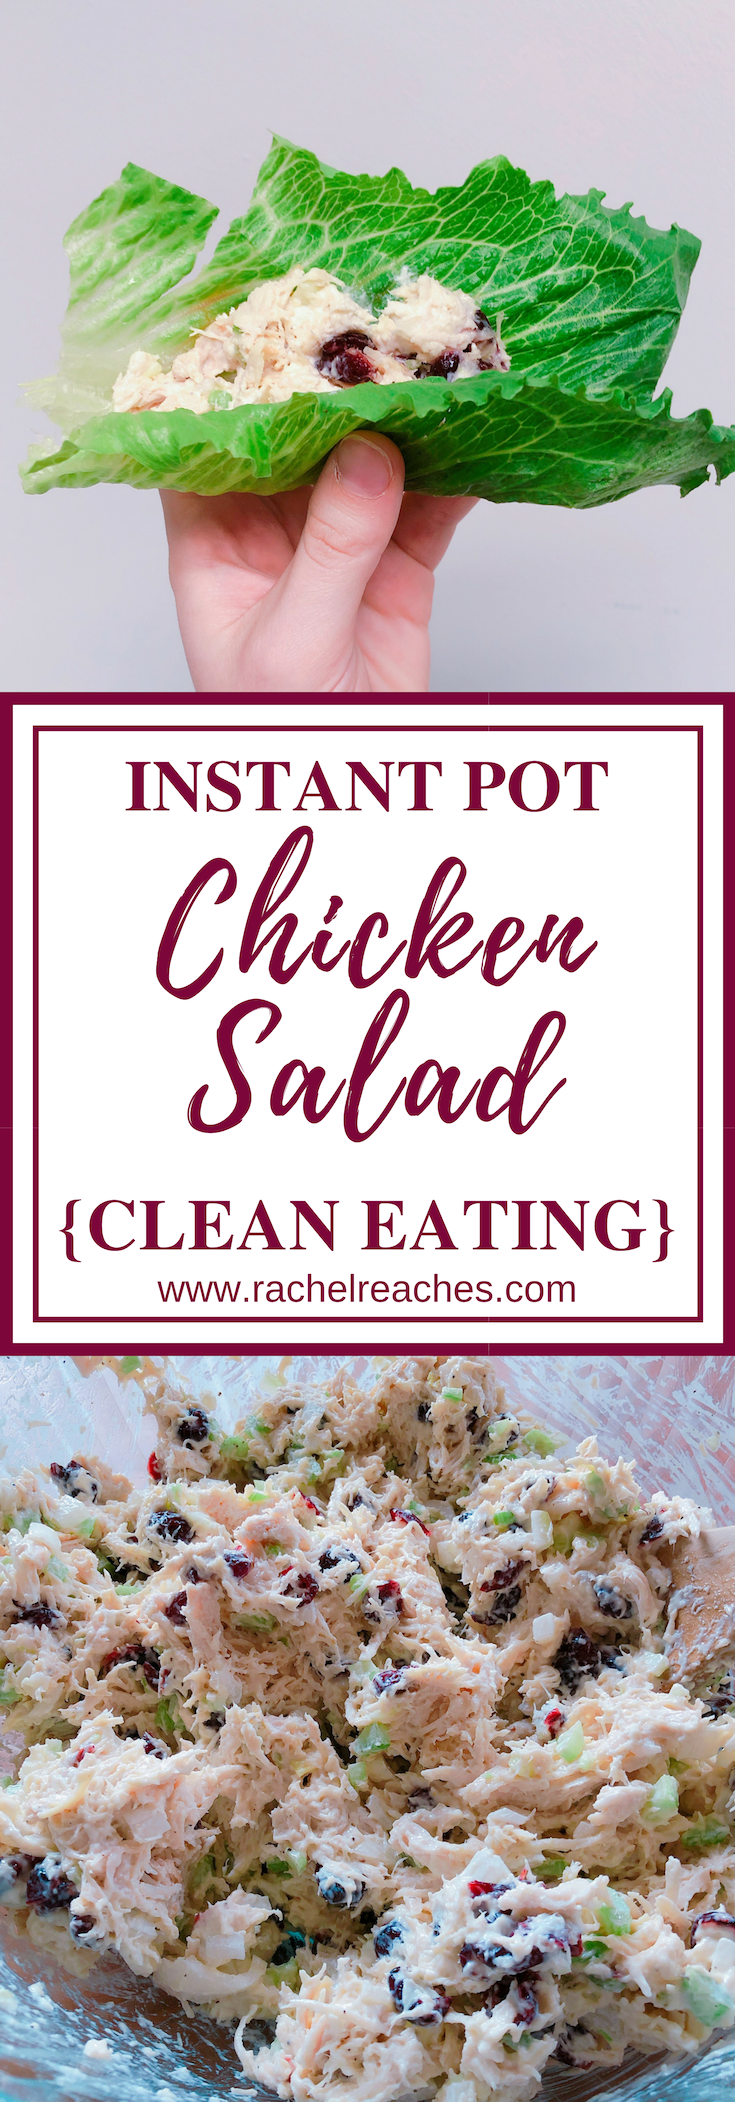 Instant Pot Chicken Salad Pin - Healthy Eating (1).png